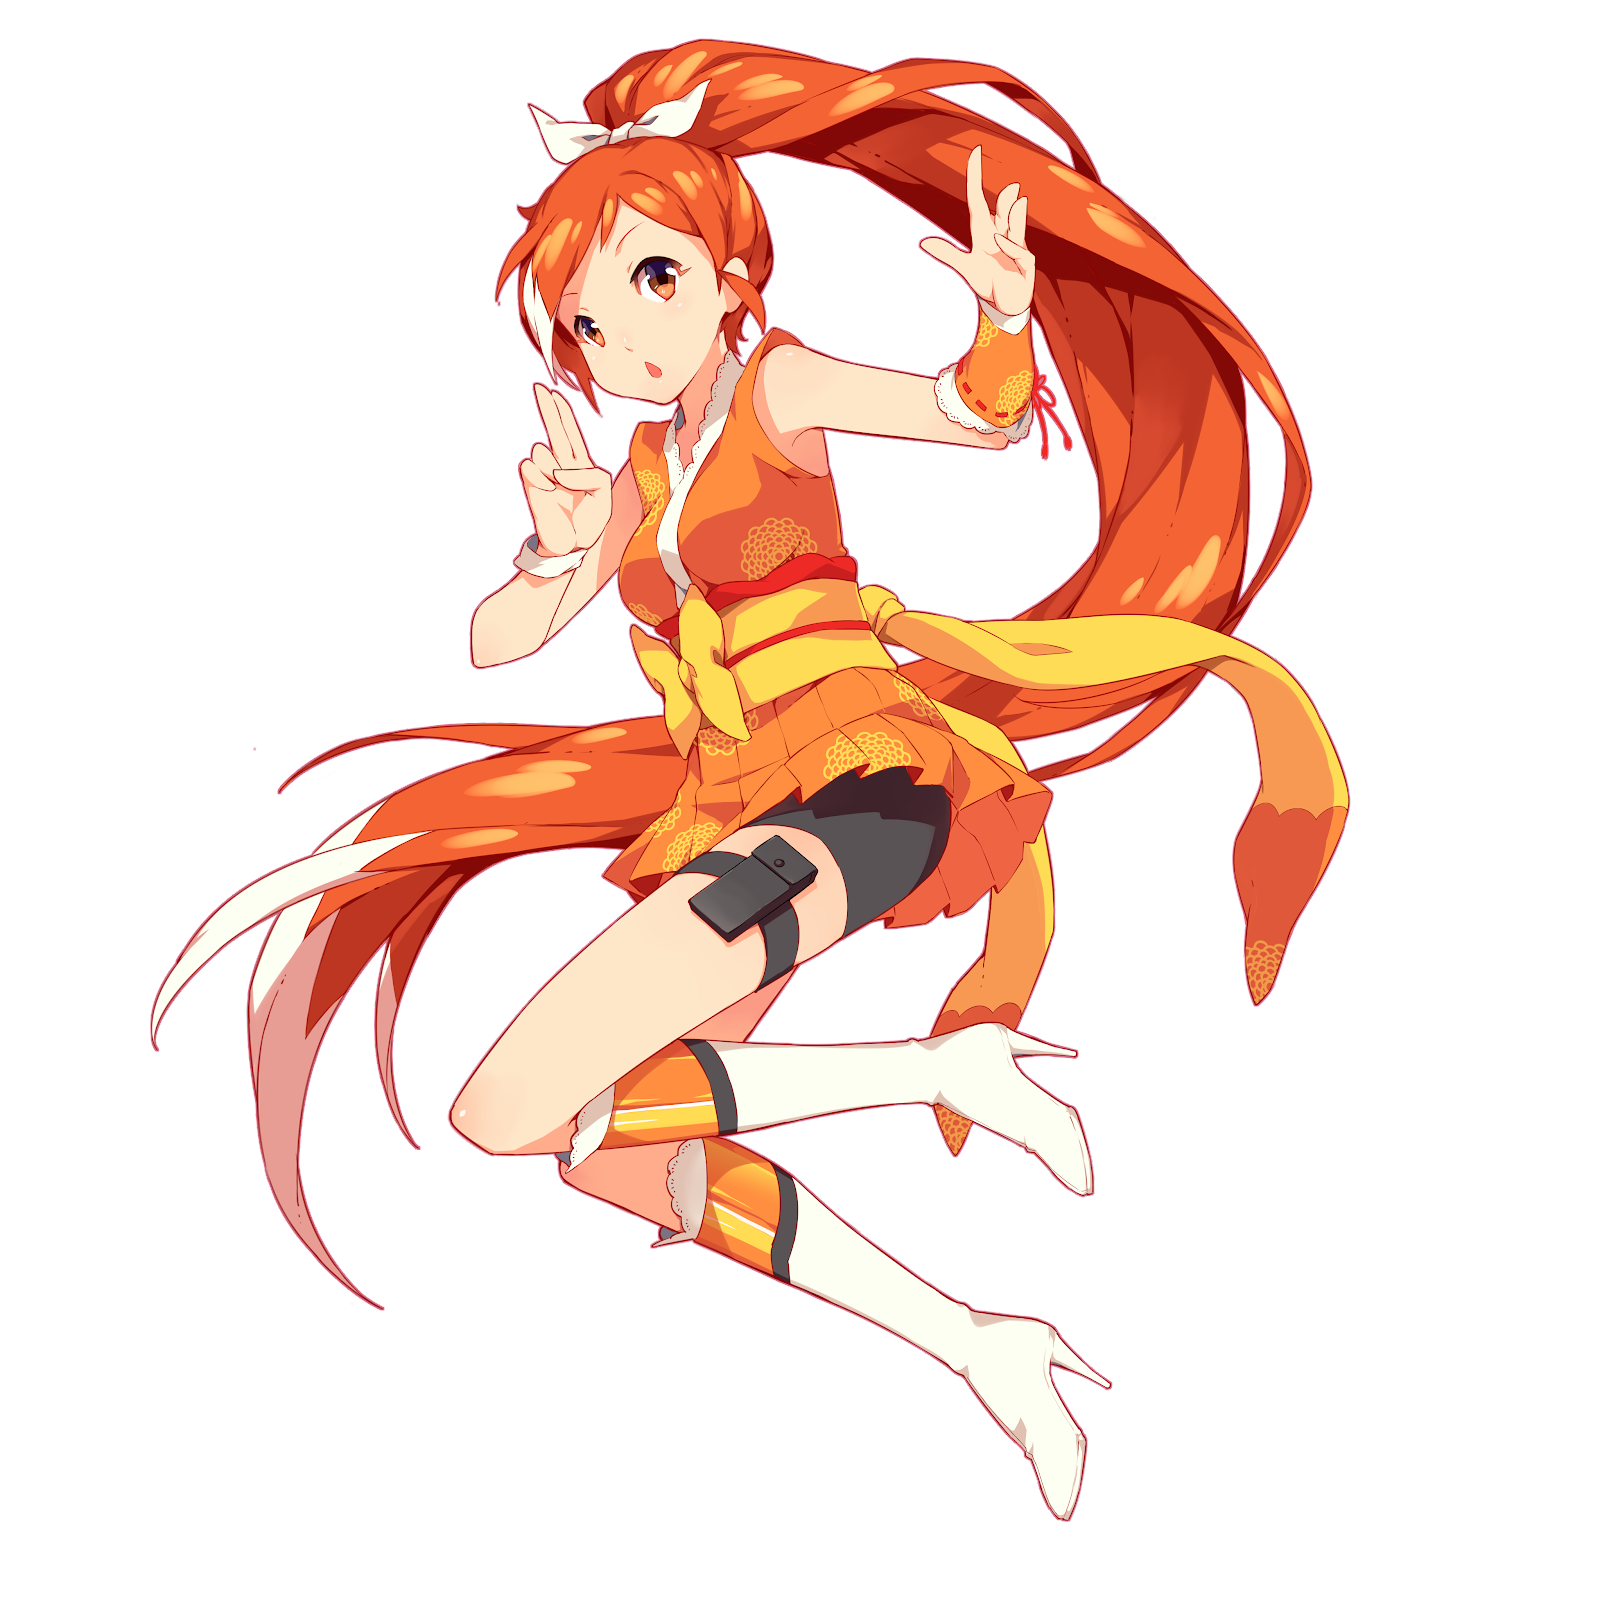 Crunchyroll - The Origin of Crunchyroll Hime